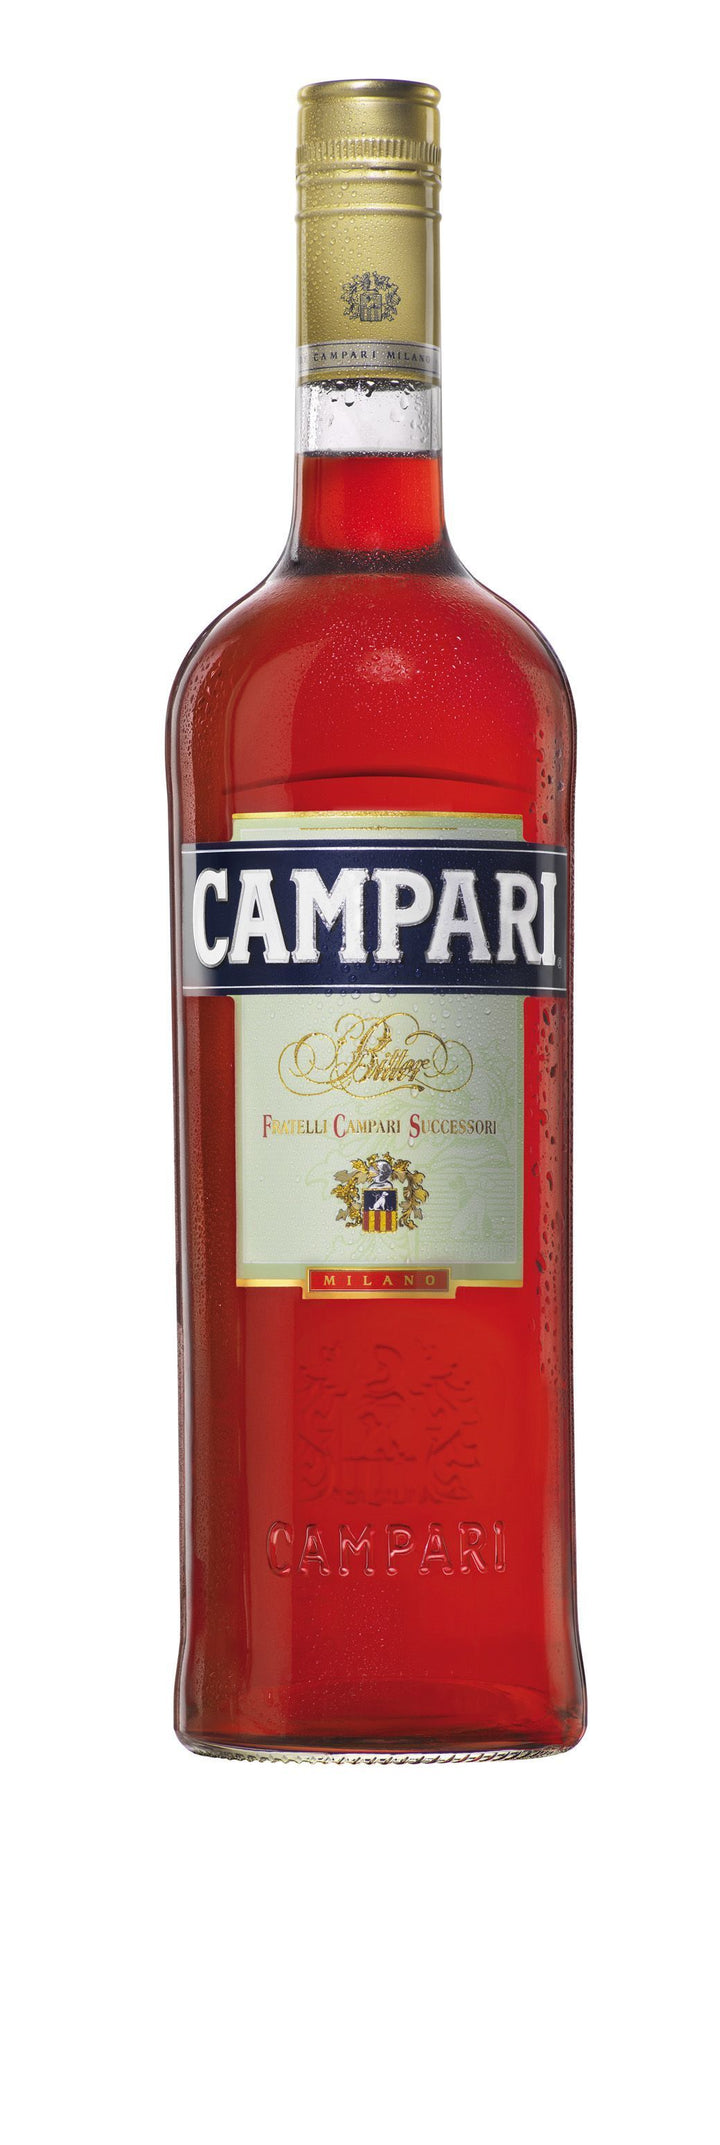 Aperitivo Campari 700ml | bogar-wines.